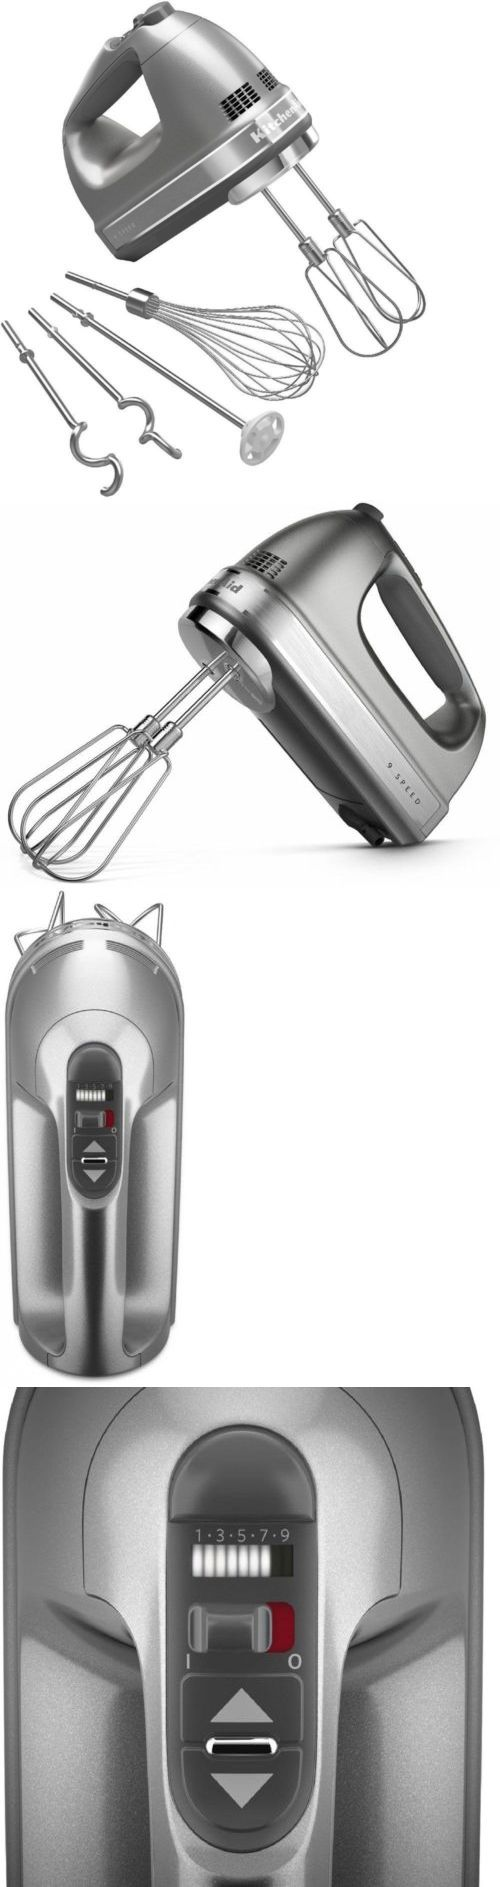 Mixers Handheld 133700: Kitchenaid 9-Speed Kitchen Hand Mixer W Turbo Beater Ii Accessories Contour -> BUY IT NOW ONLY: $113.95 on eBay!